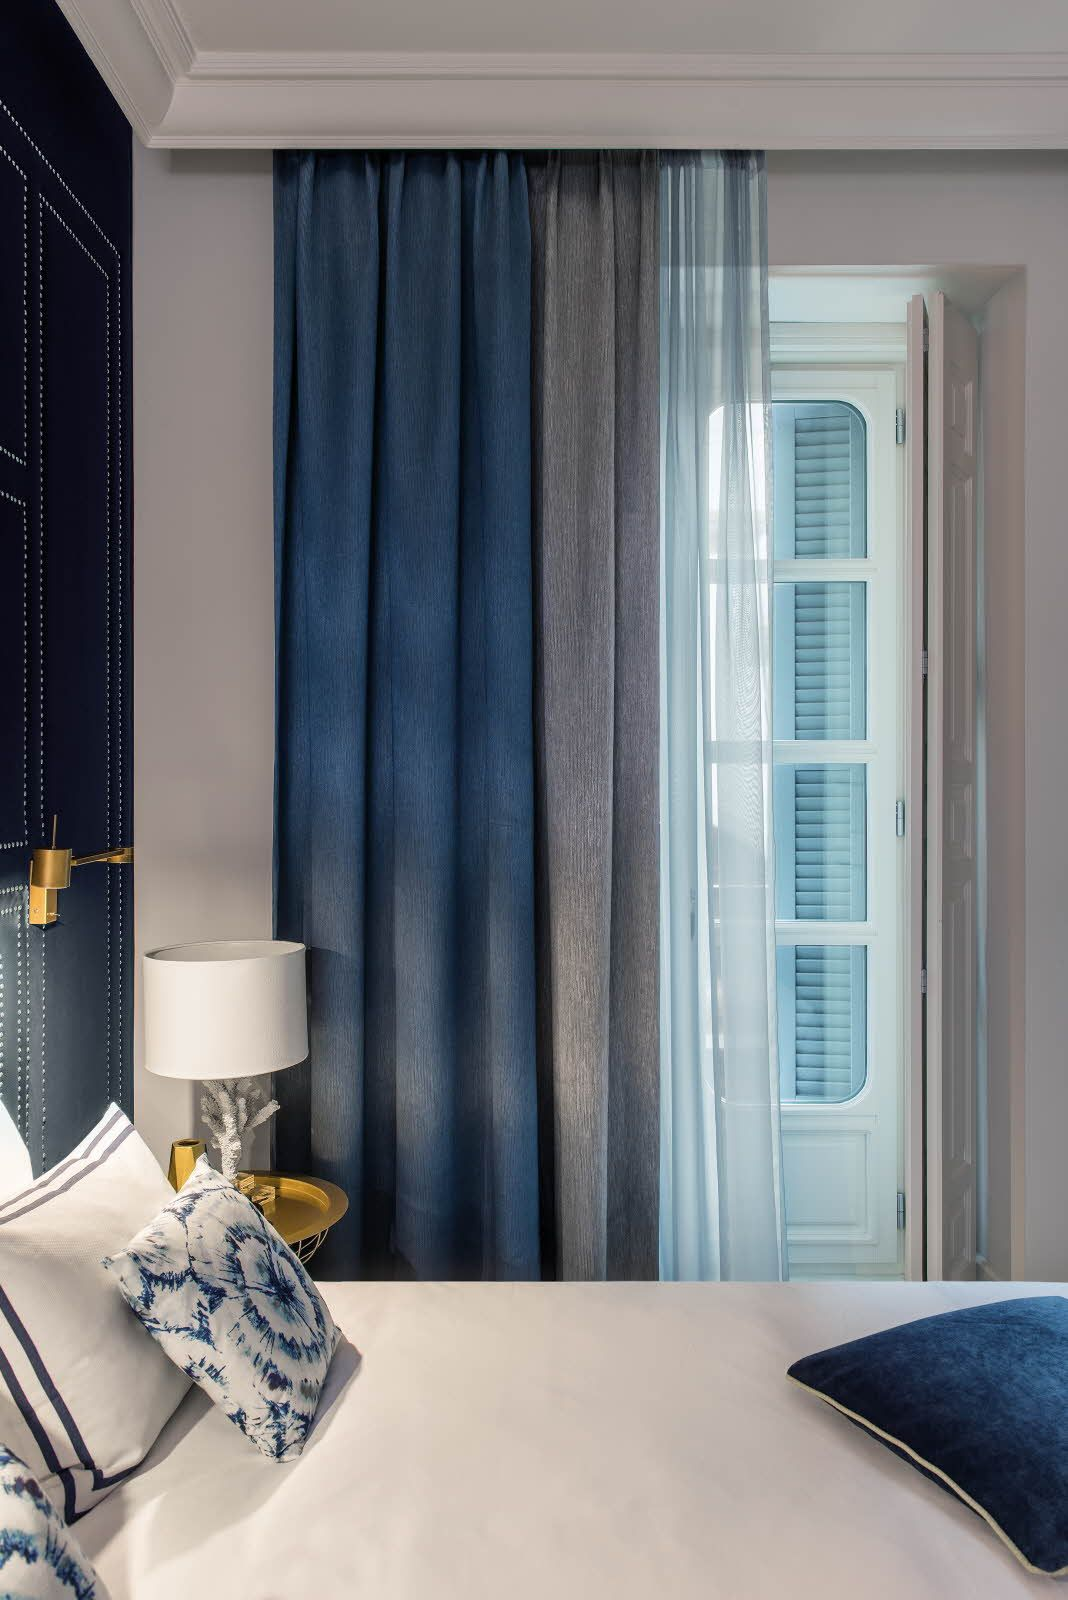 Dim out curtains from the FR-One Ataton range  Inherently